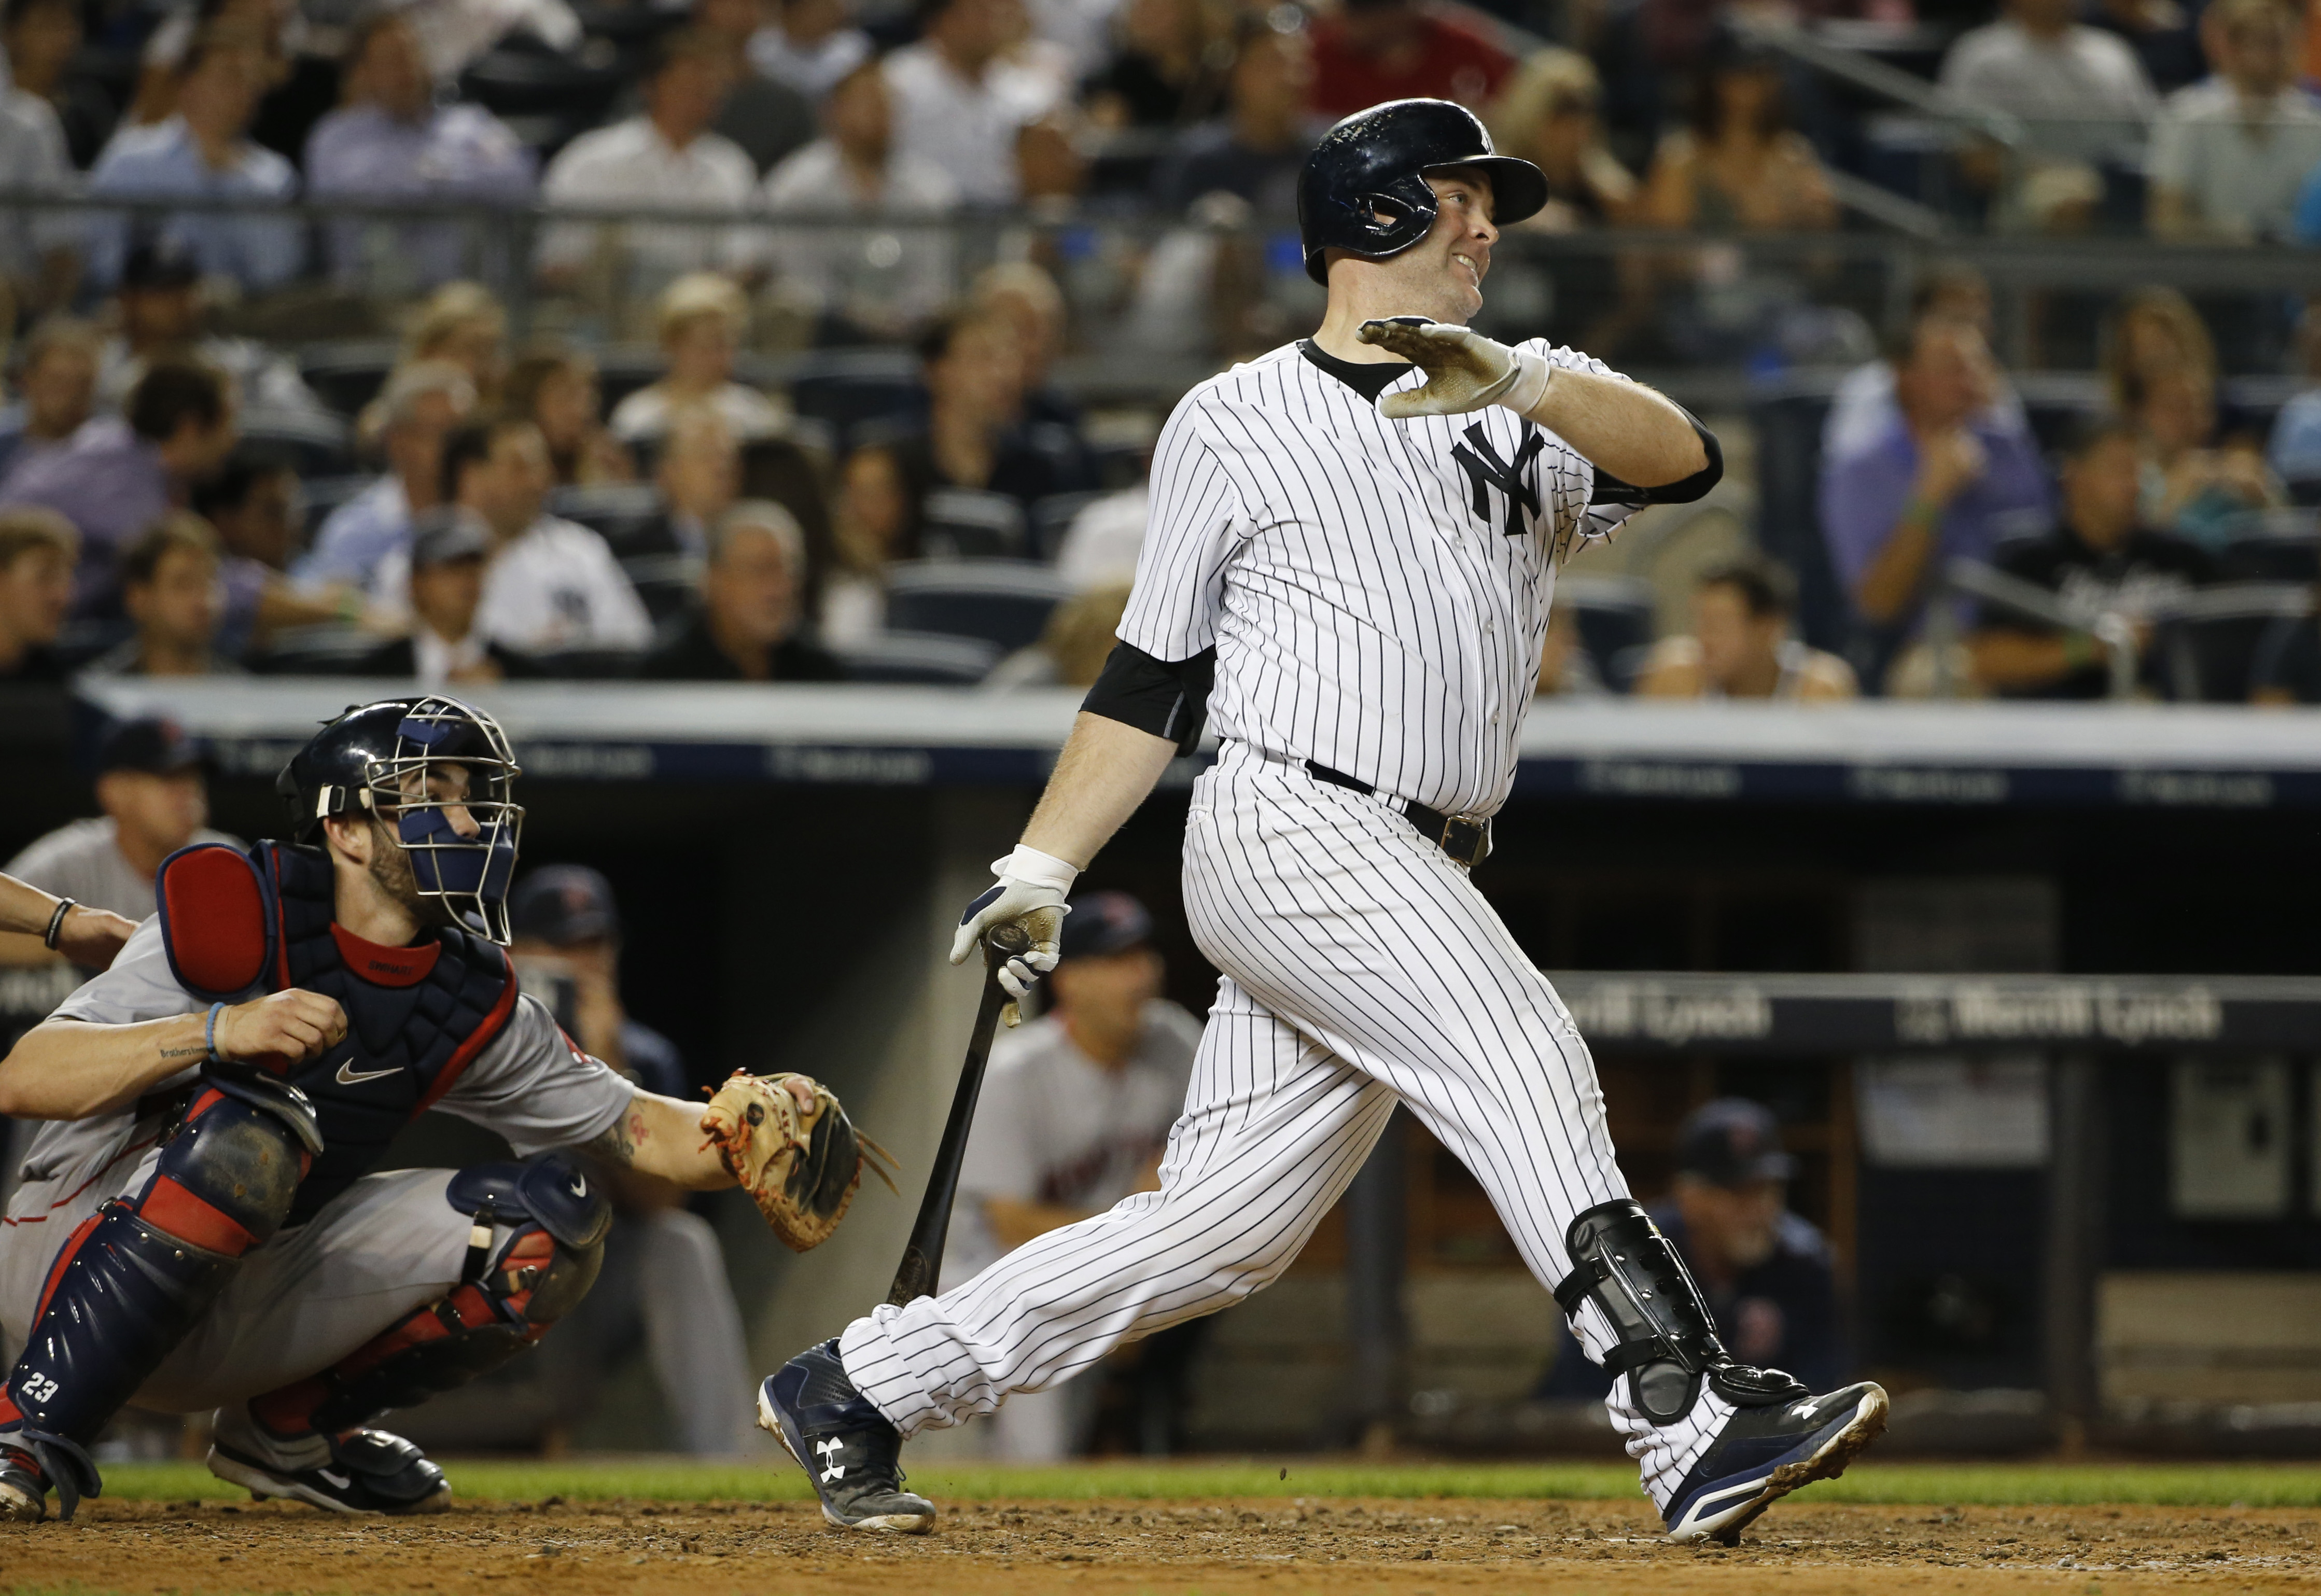 New York Yankees Brian McCann watches a sixth-inning RBI double in a baseball game against the Boston Red Sox at Yankee Stadium in New York, Tuesday, Aug. 4, 2015.  (AP Photo/Kathy Willens)